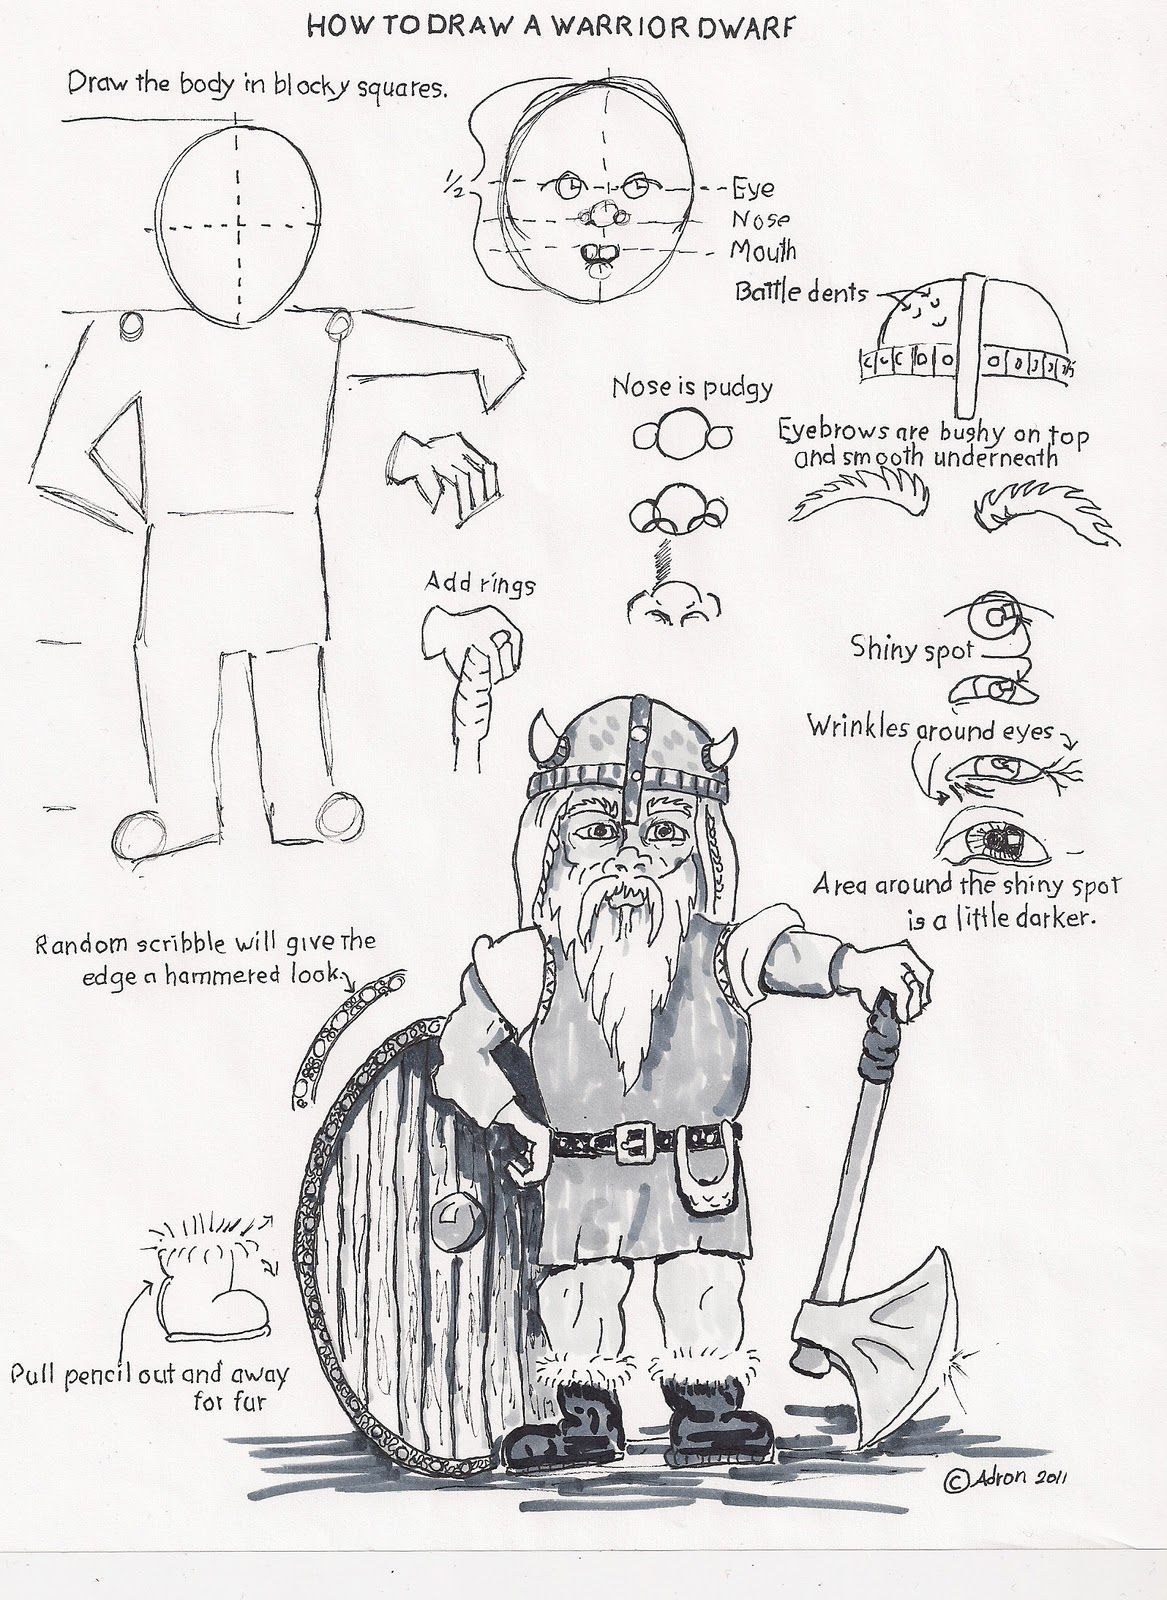 How To Draw A Warrior Dwarf A Project For A Young Artist